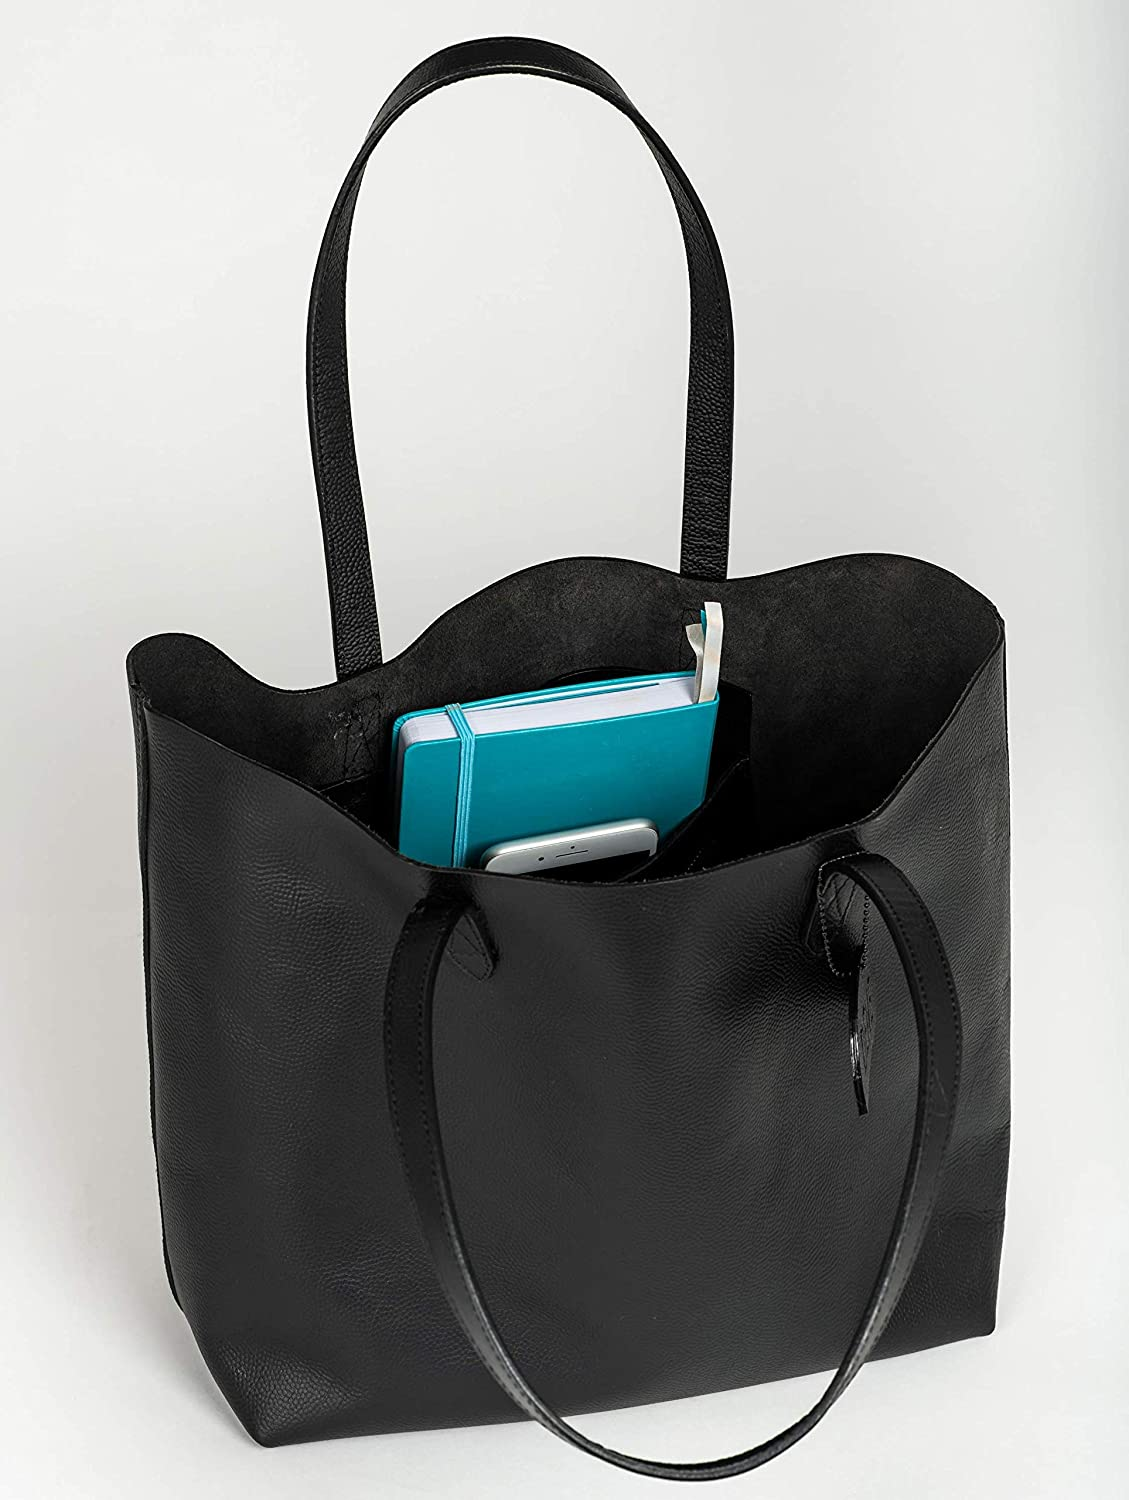 "96d7fd8f42d5 Amazon.com  Leather Tote Bag for Women. Made with Genuine Leather. This  Extra Large Black Tote Bag Fits 15""   17"" Laptops  Clothing"